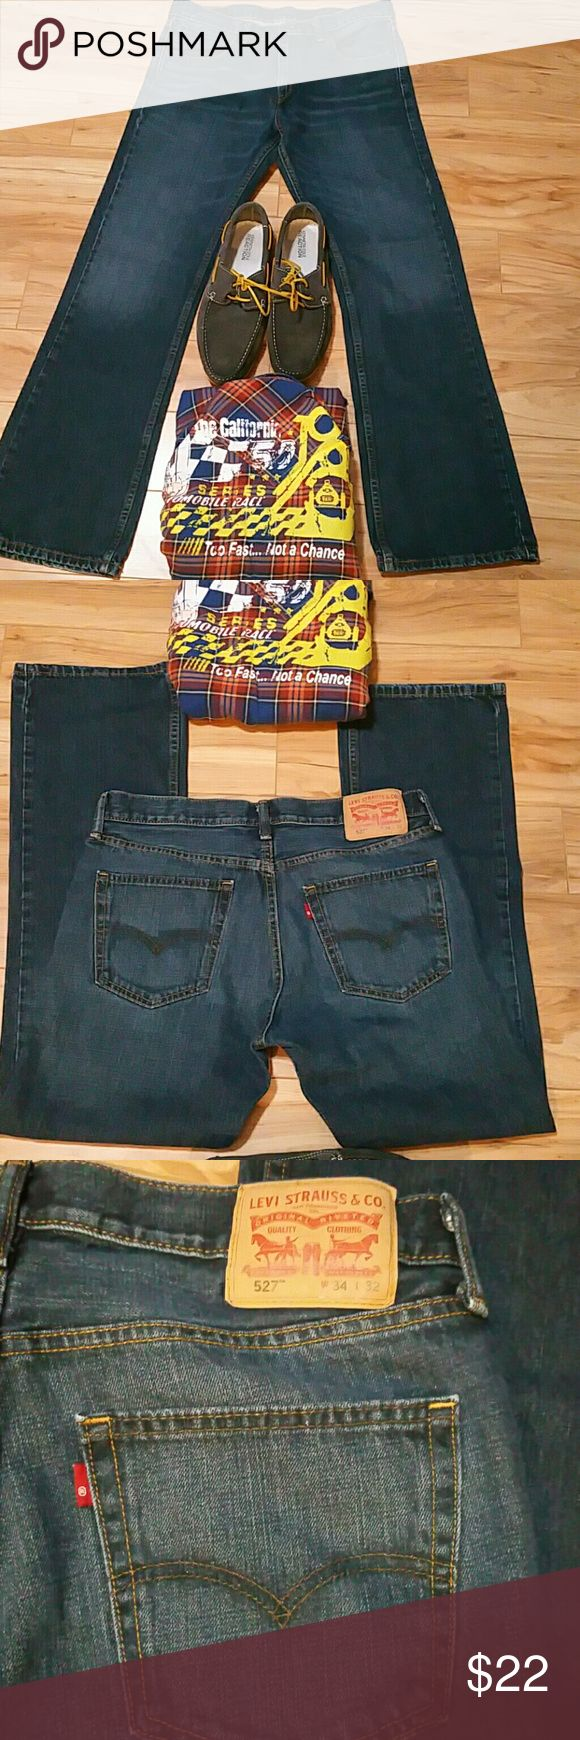 Levis 527 Bootcut jeans size 34 x 32 Levi's 527 slim boot cut jeans have a lower rise, are slim in the seat and thigh, and boast a boot cut from knee to ankle. NWOT Levi's Jeans Bootcut